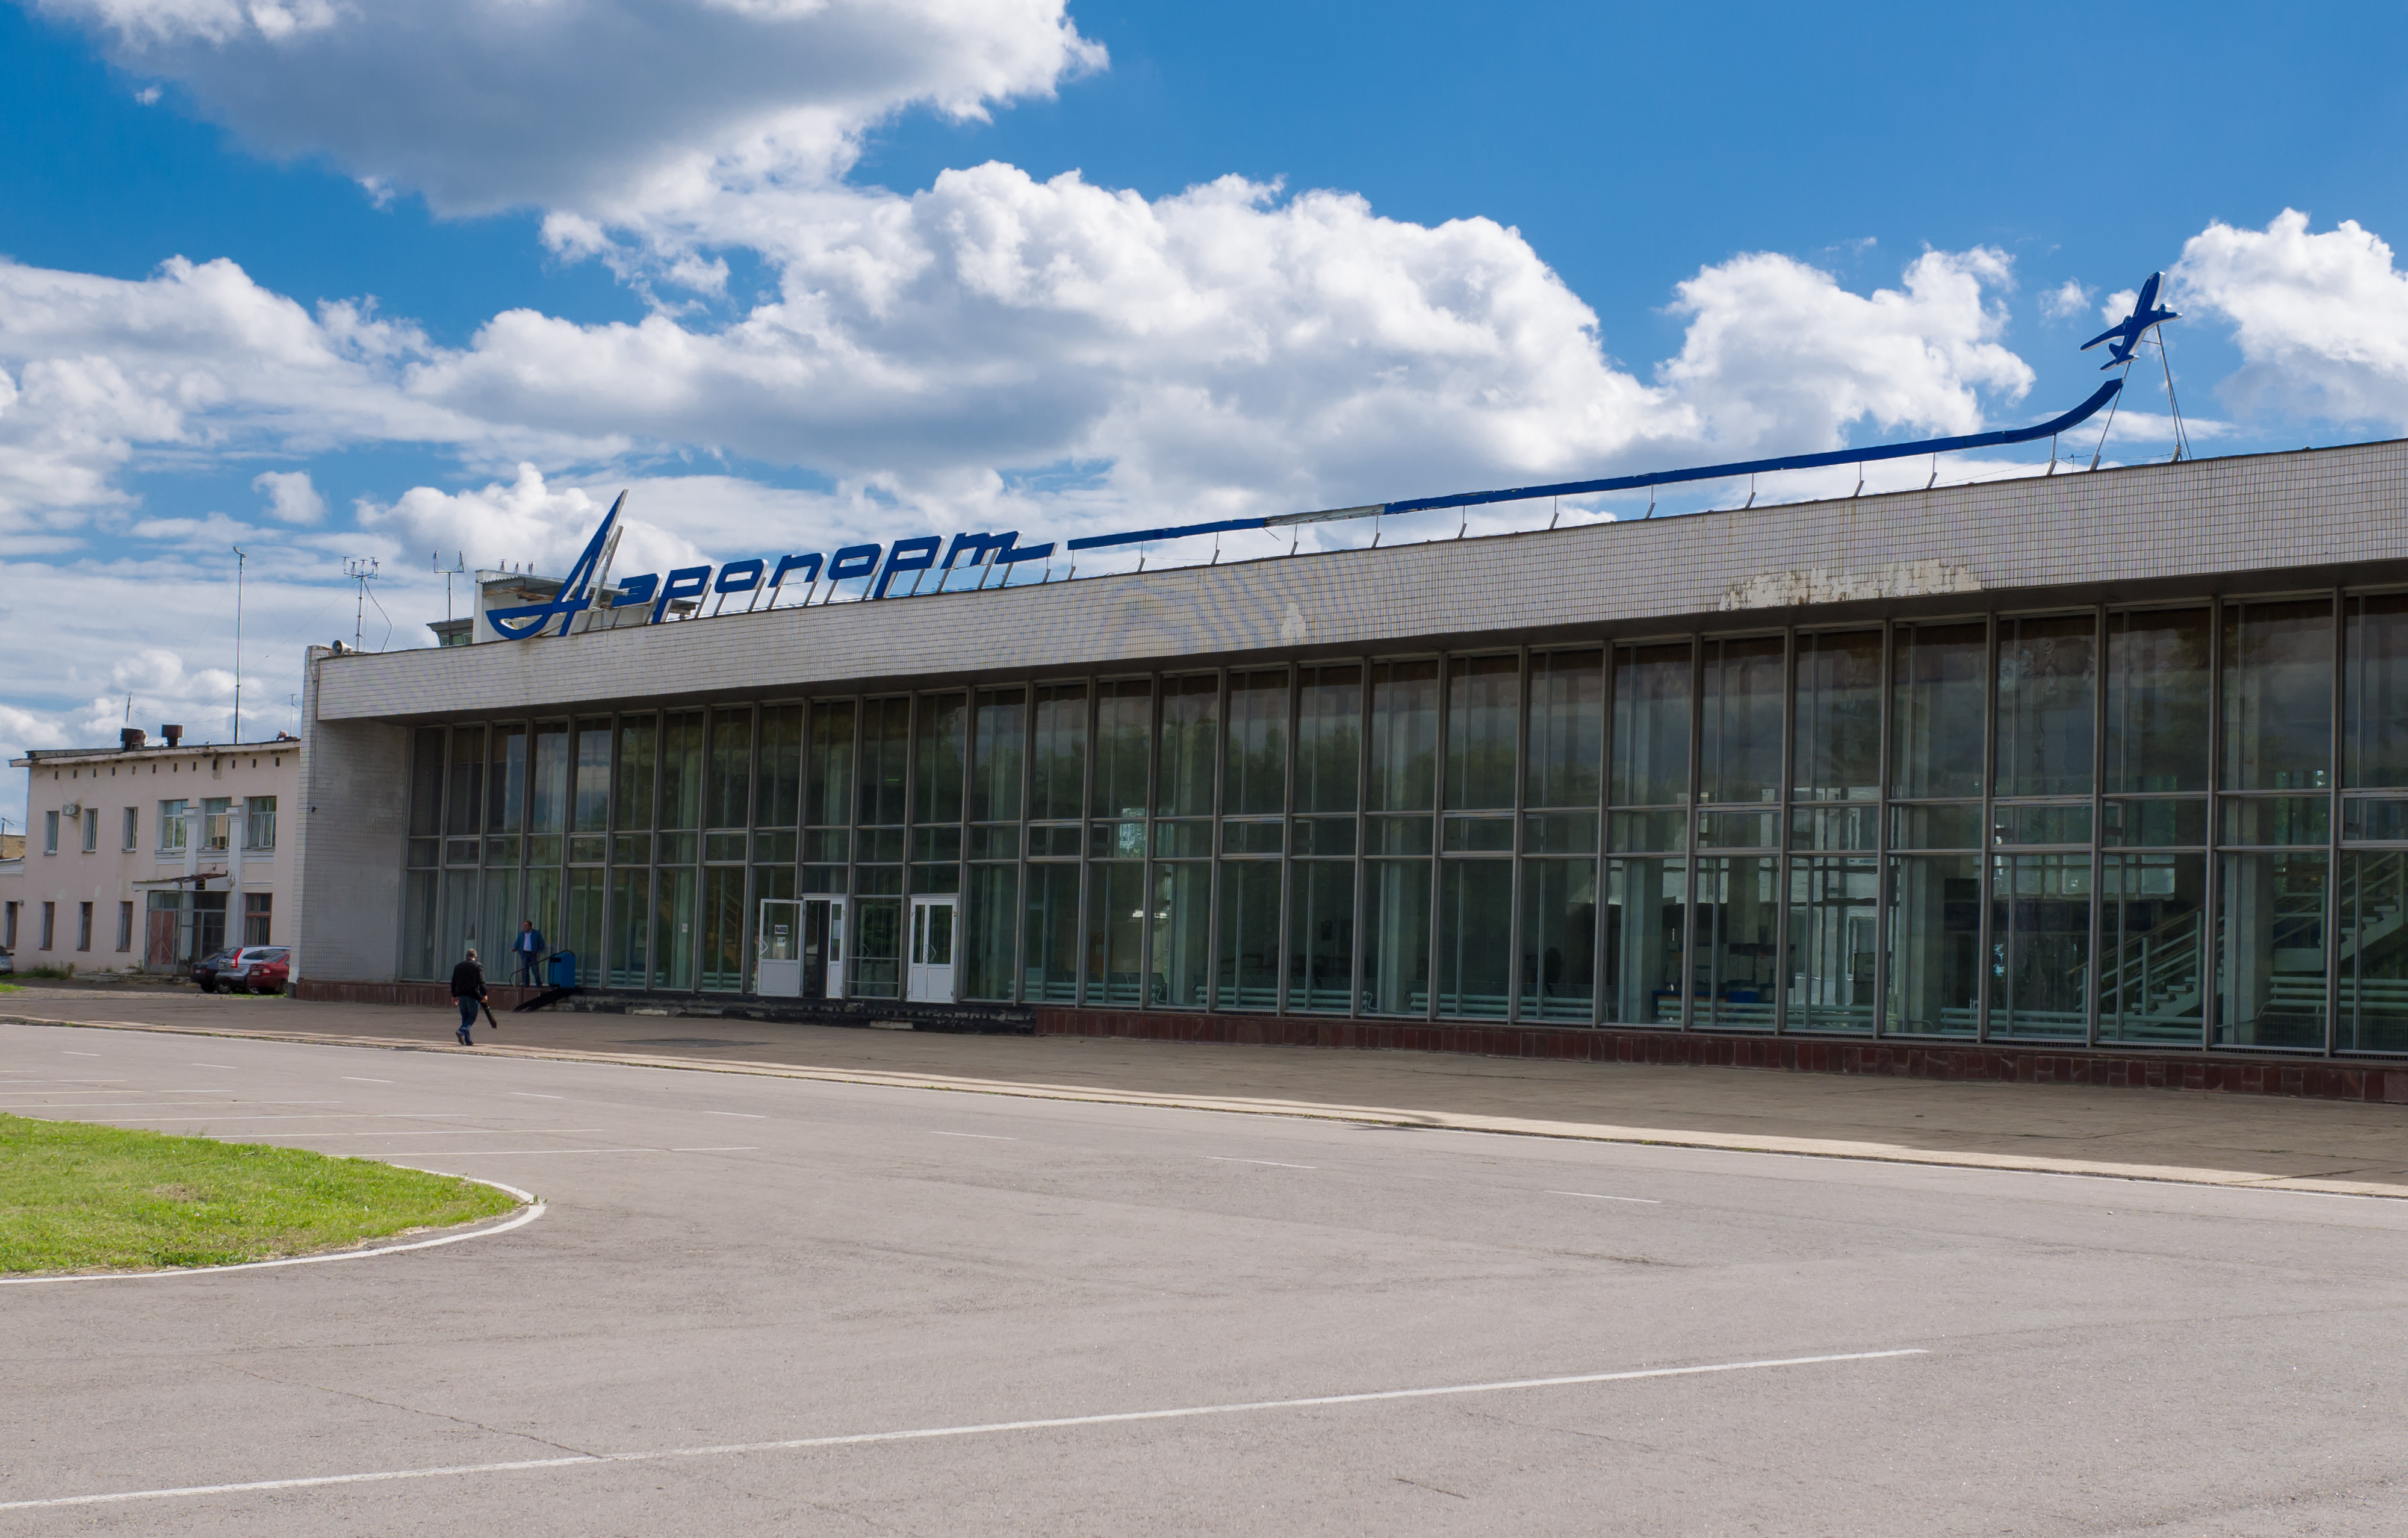 The terminal of the airport Tambov Donskoye